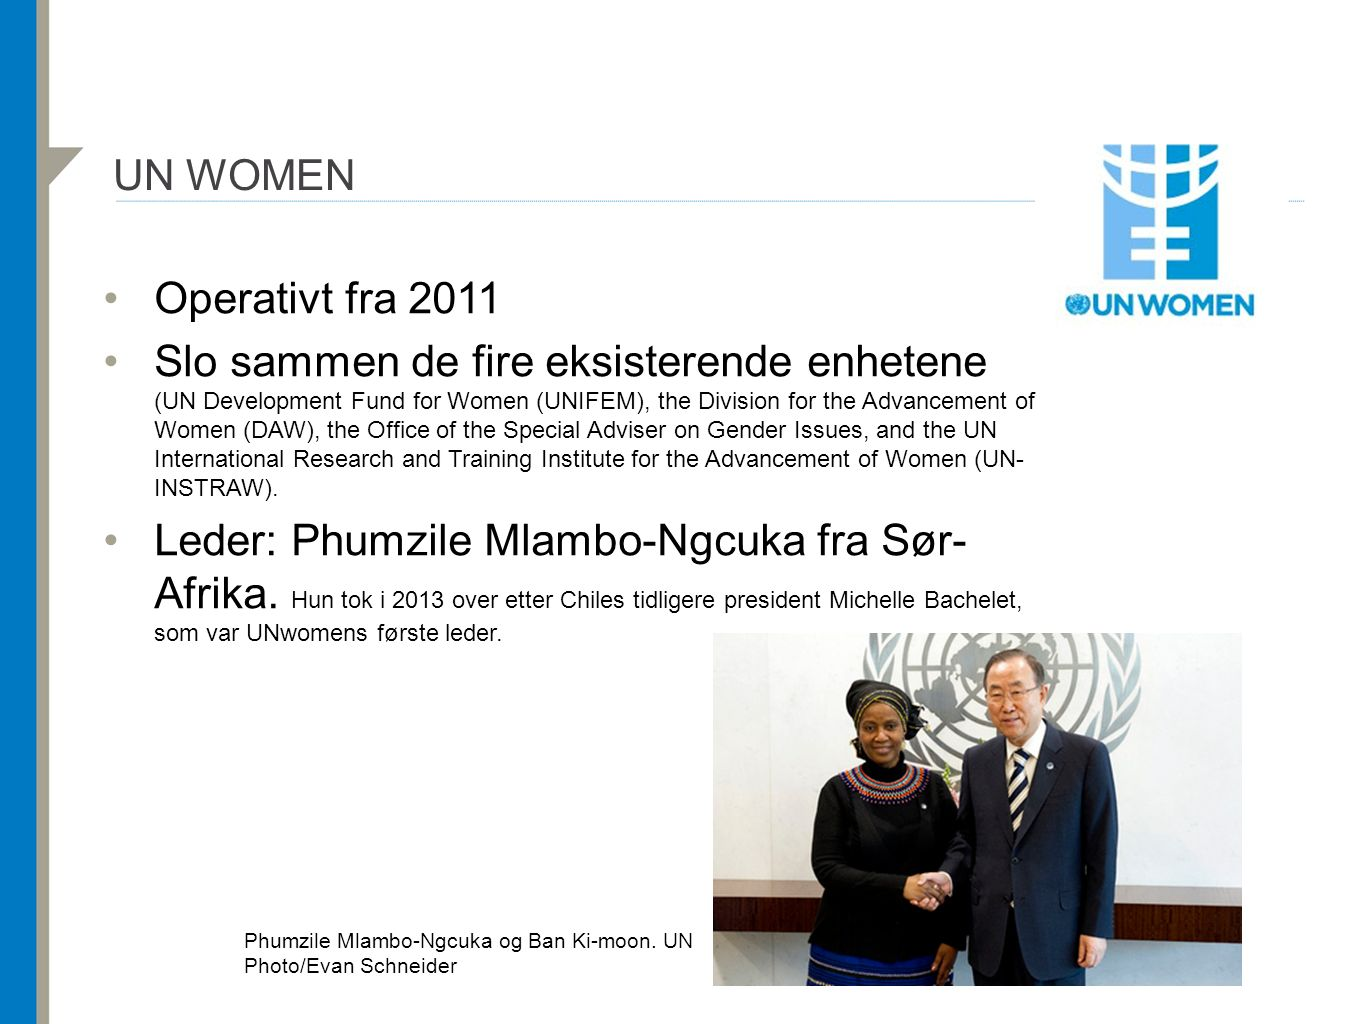 UN WOMEN Operativt fra 2011 Slo sammen de fire eksisterende enhetene (UN Development Fund for Women (UNIFEM), the Division for the Advancement of Women (DAW), the Office of the Special Adviser on Gender Issues, and the UN International Research and Training Institute for the Advancement of Women (UN- INSTRAW).